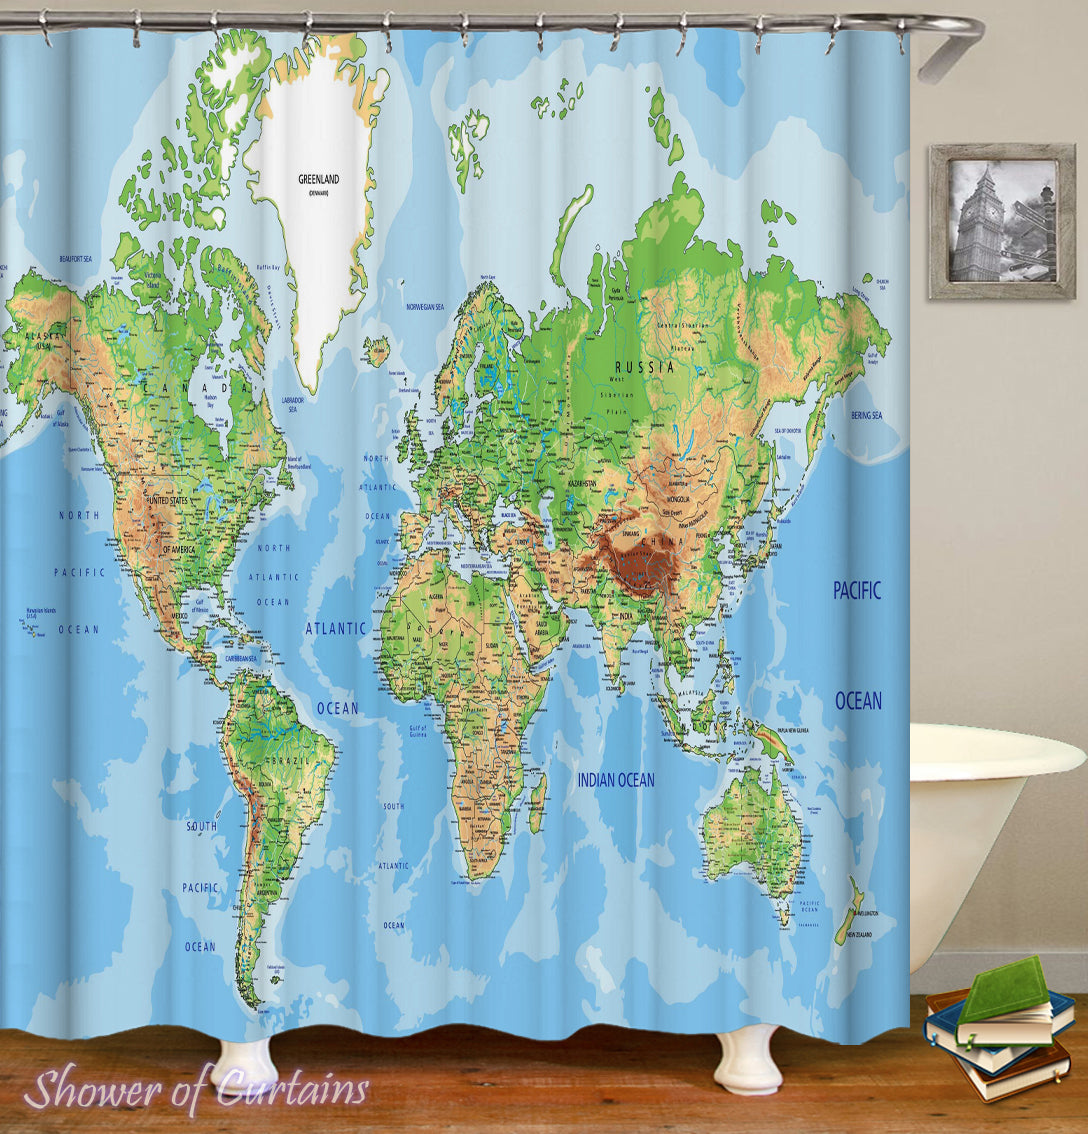 Shower Curtains World Map Shower Of Curtains